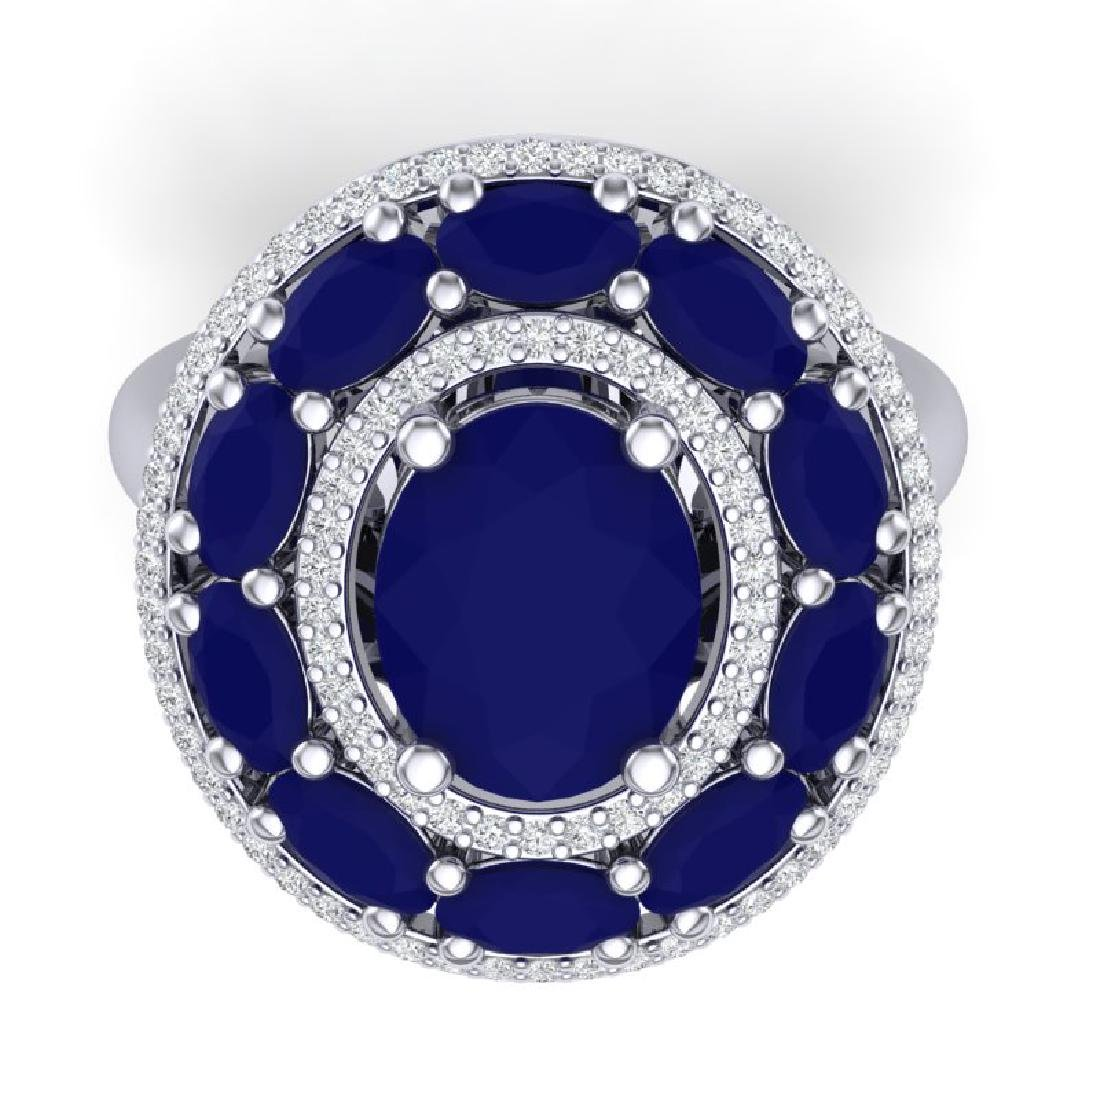 8.05 CTW Royalty Designer Sapphire & VS Diamond Ring - 2